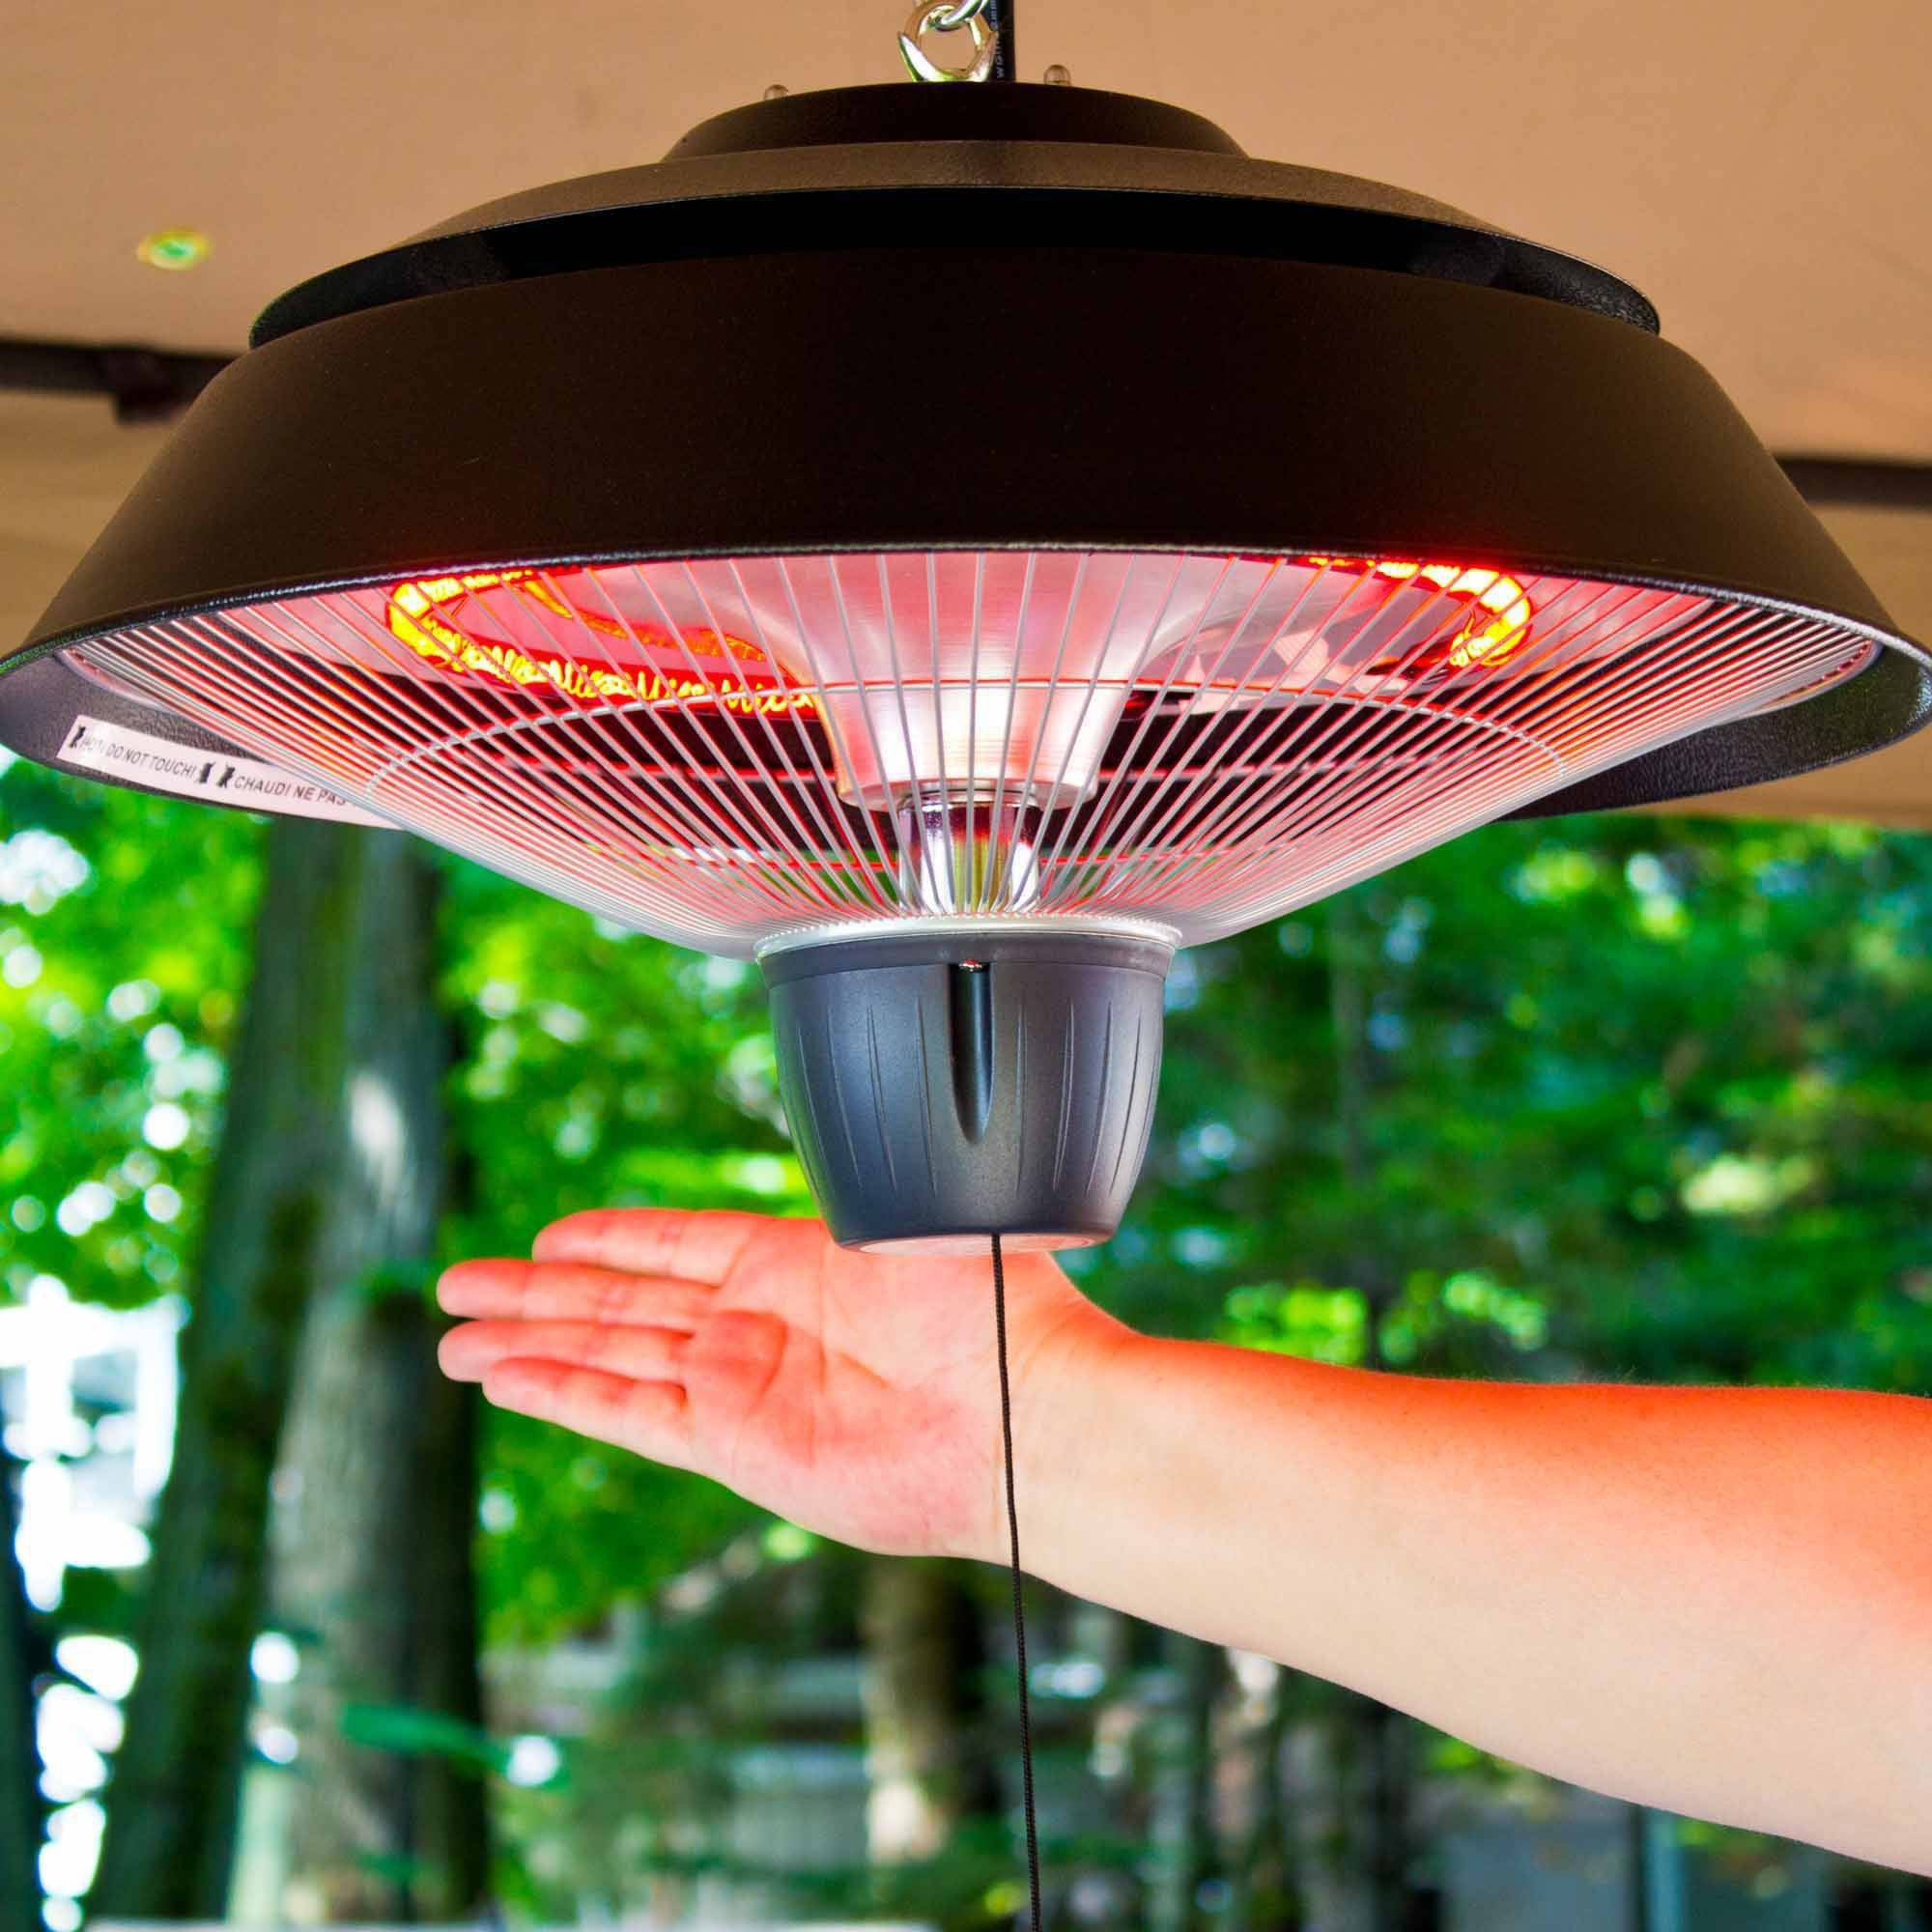 Energ+ 1500 Watt Hanging Electric Infrared Gazebo Heater, Hammered Intended For Outdoor Hanging Heat Lamps (#3 of 15)